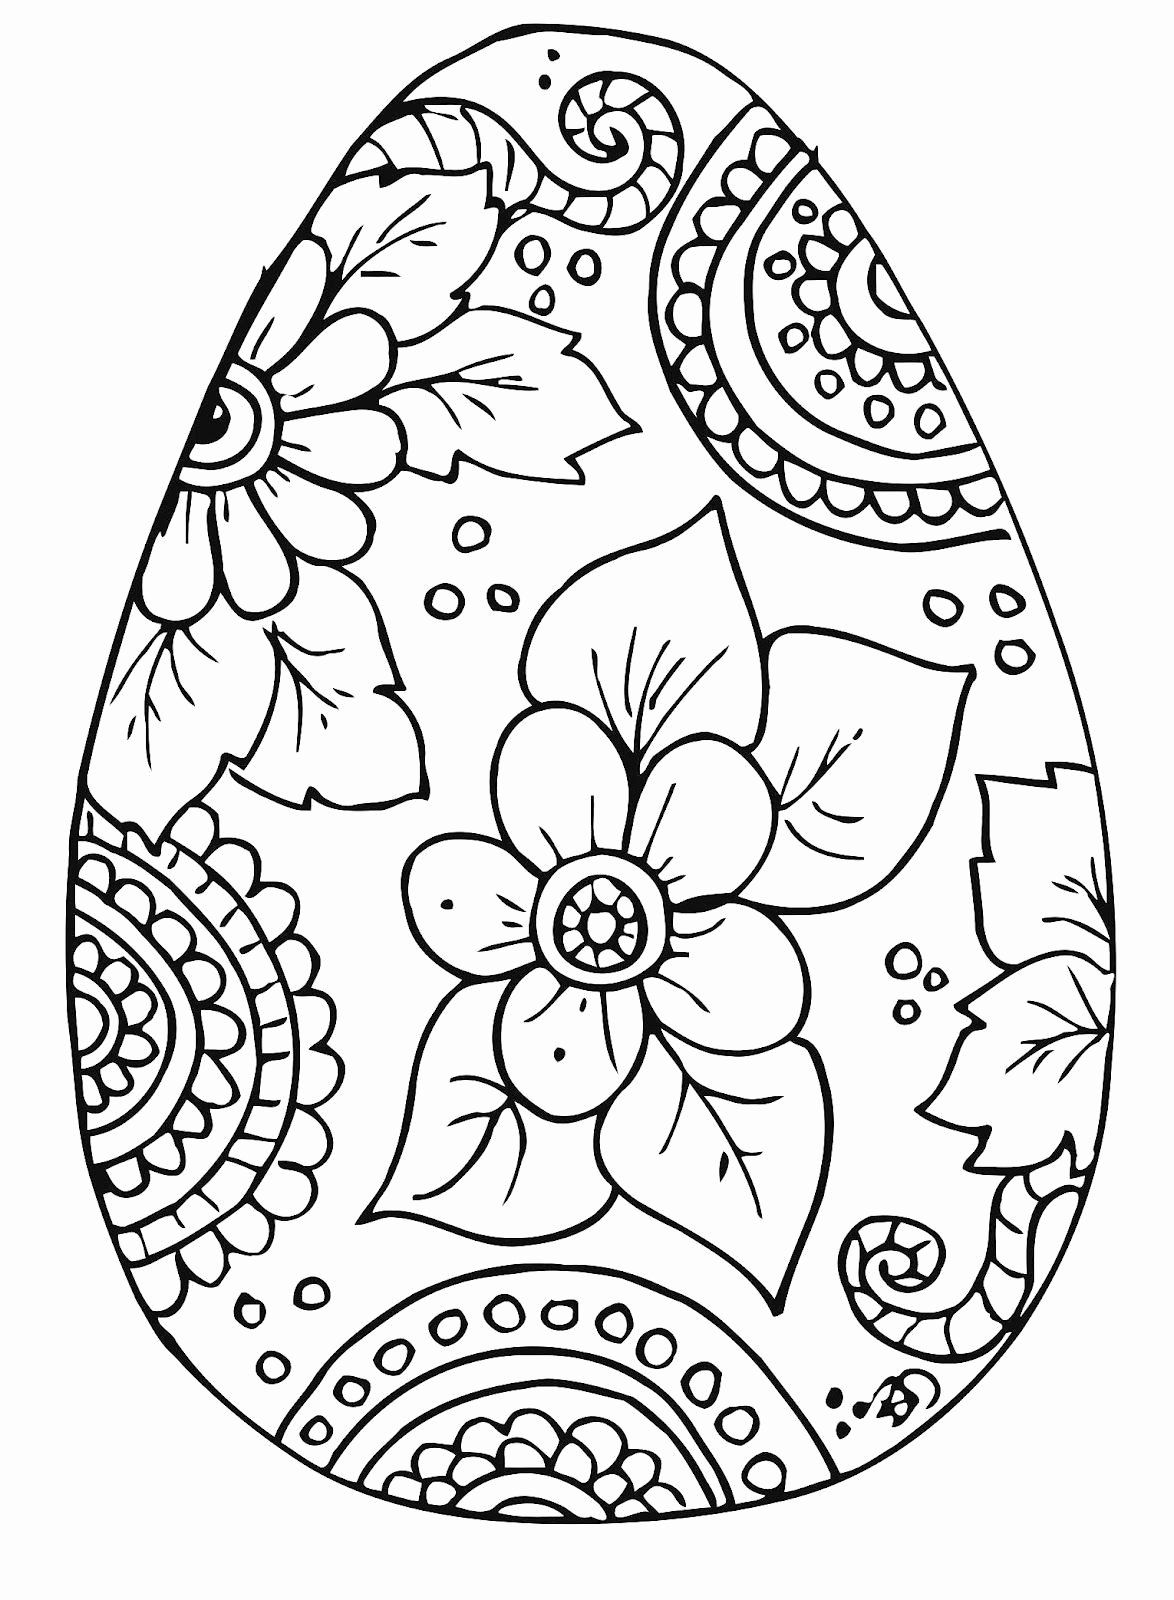 Happy New Year From All The Colorarty Com Team Easter Coloring Pages Easter Coloring Sheets Spring Coloring Pages